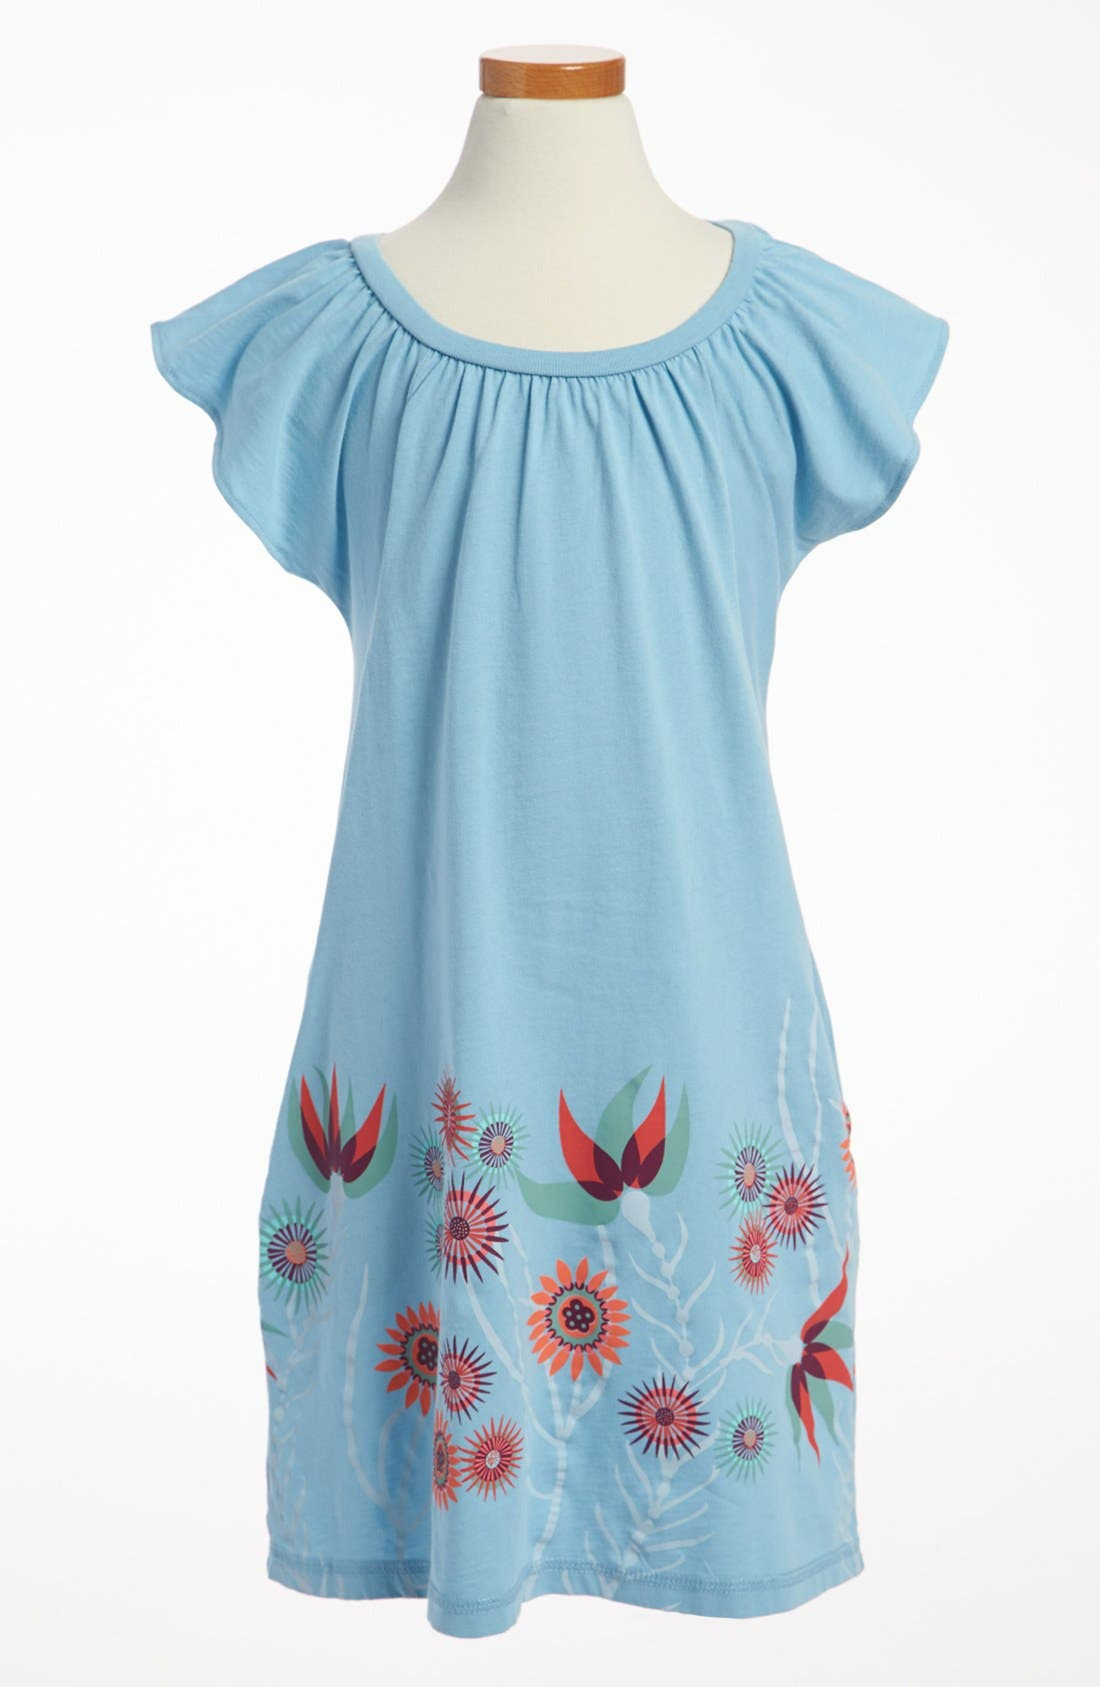 Alternate Image 1 Selected - Tea Collection 'Anemone Garden' Minidress (Little Girls & Big Girls)